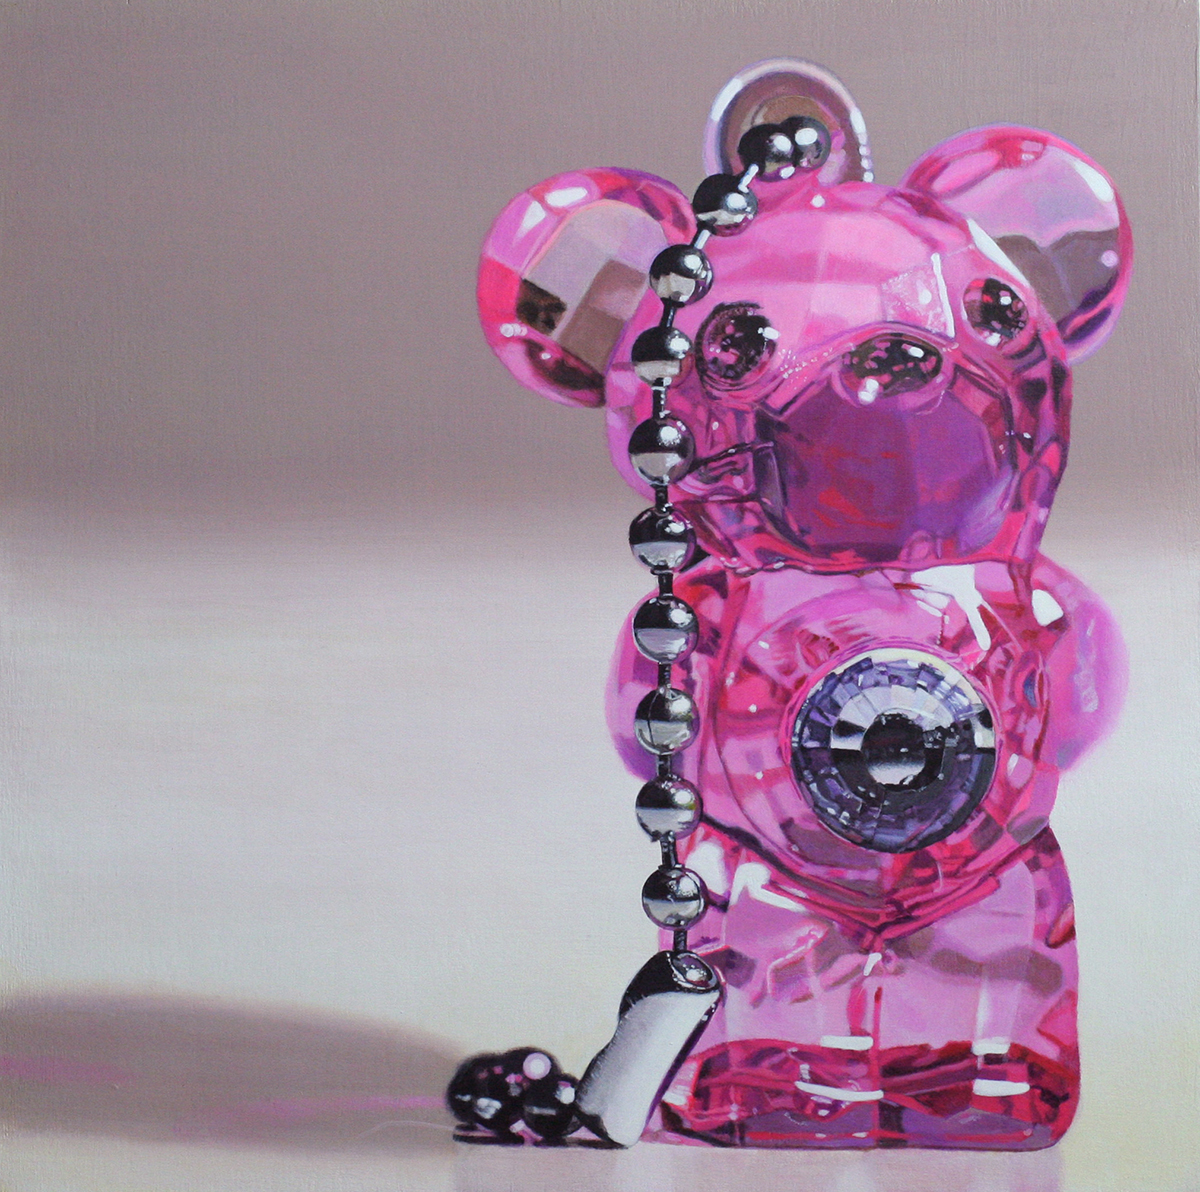 pink plastic bear toy painting by LJ Lindhurst